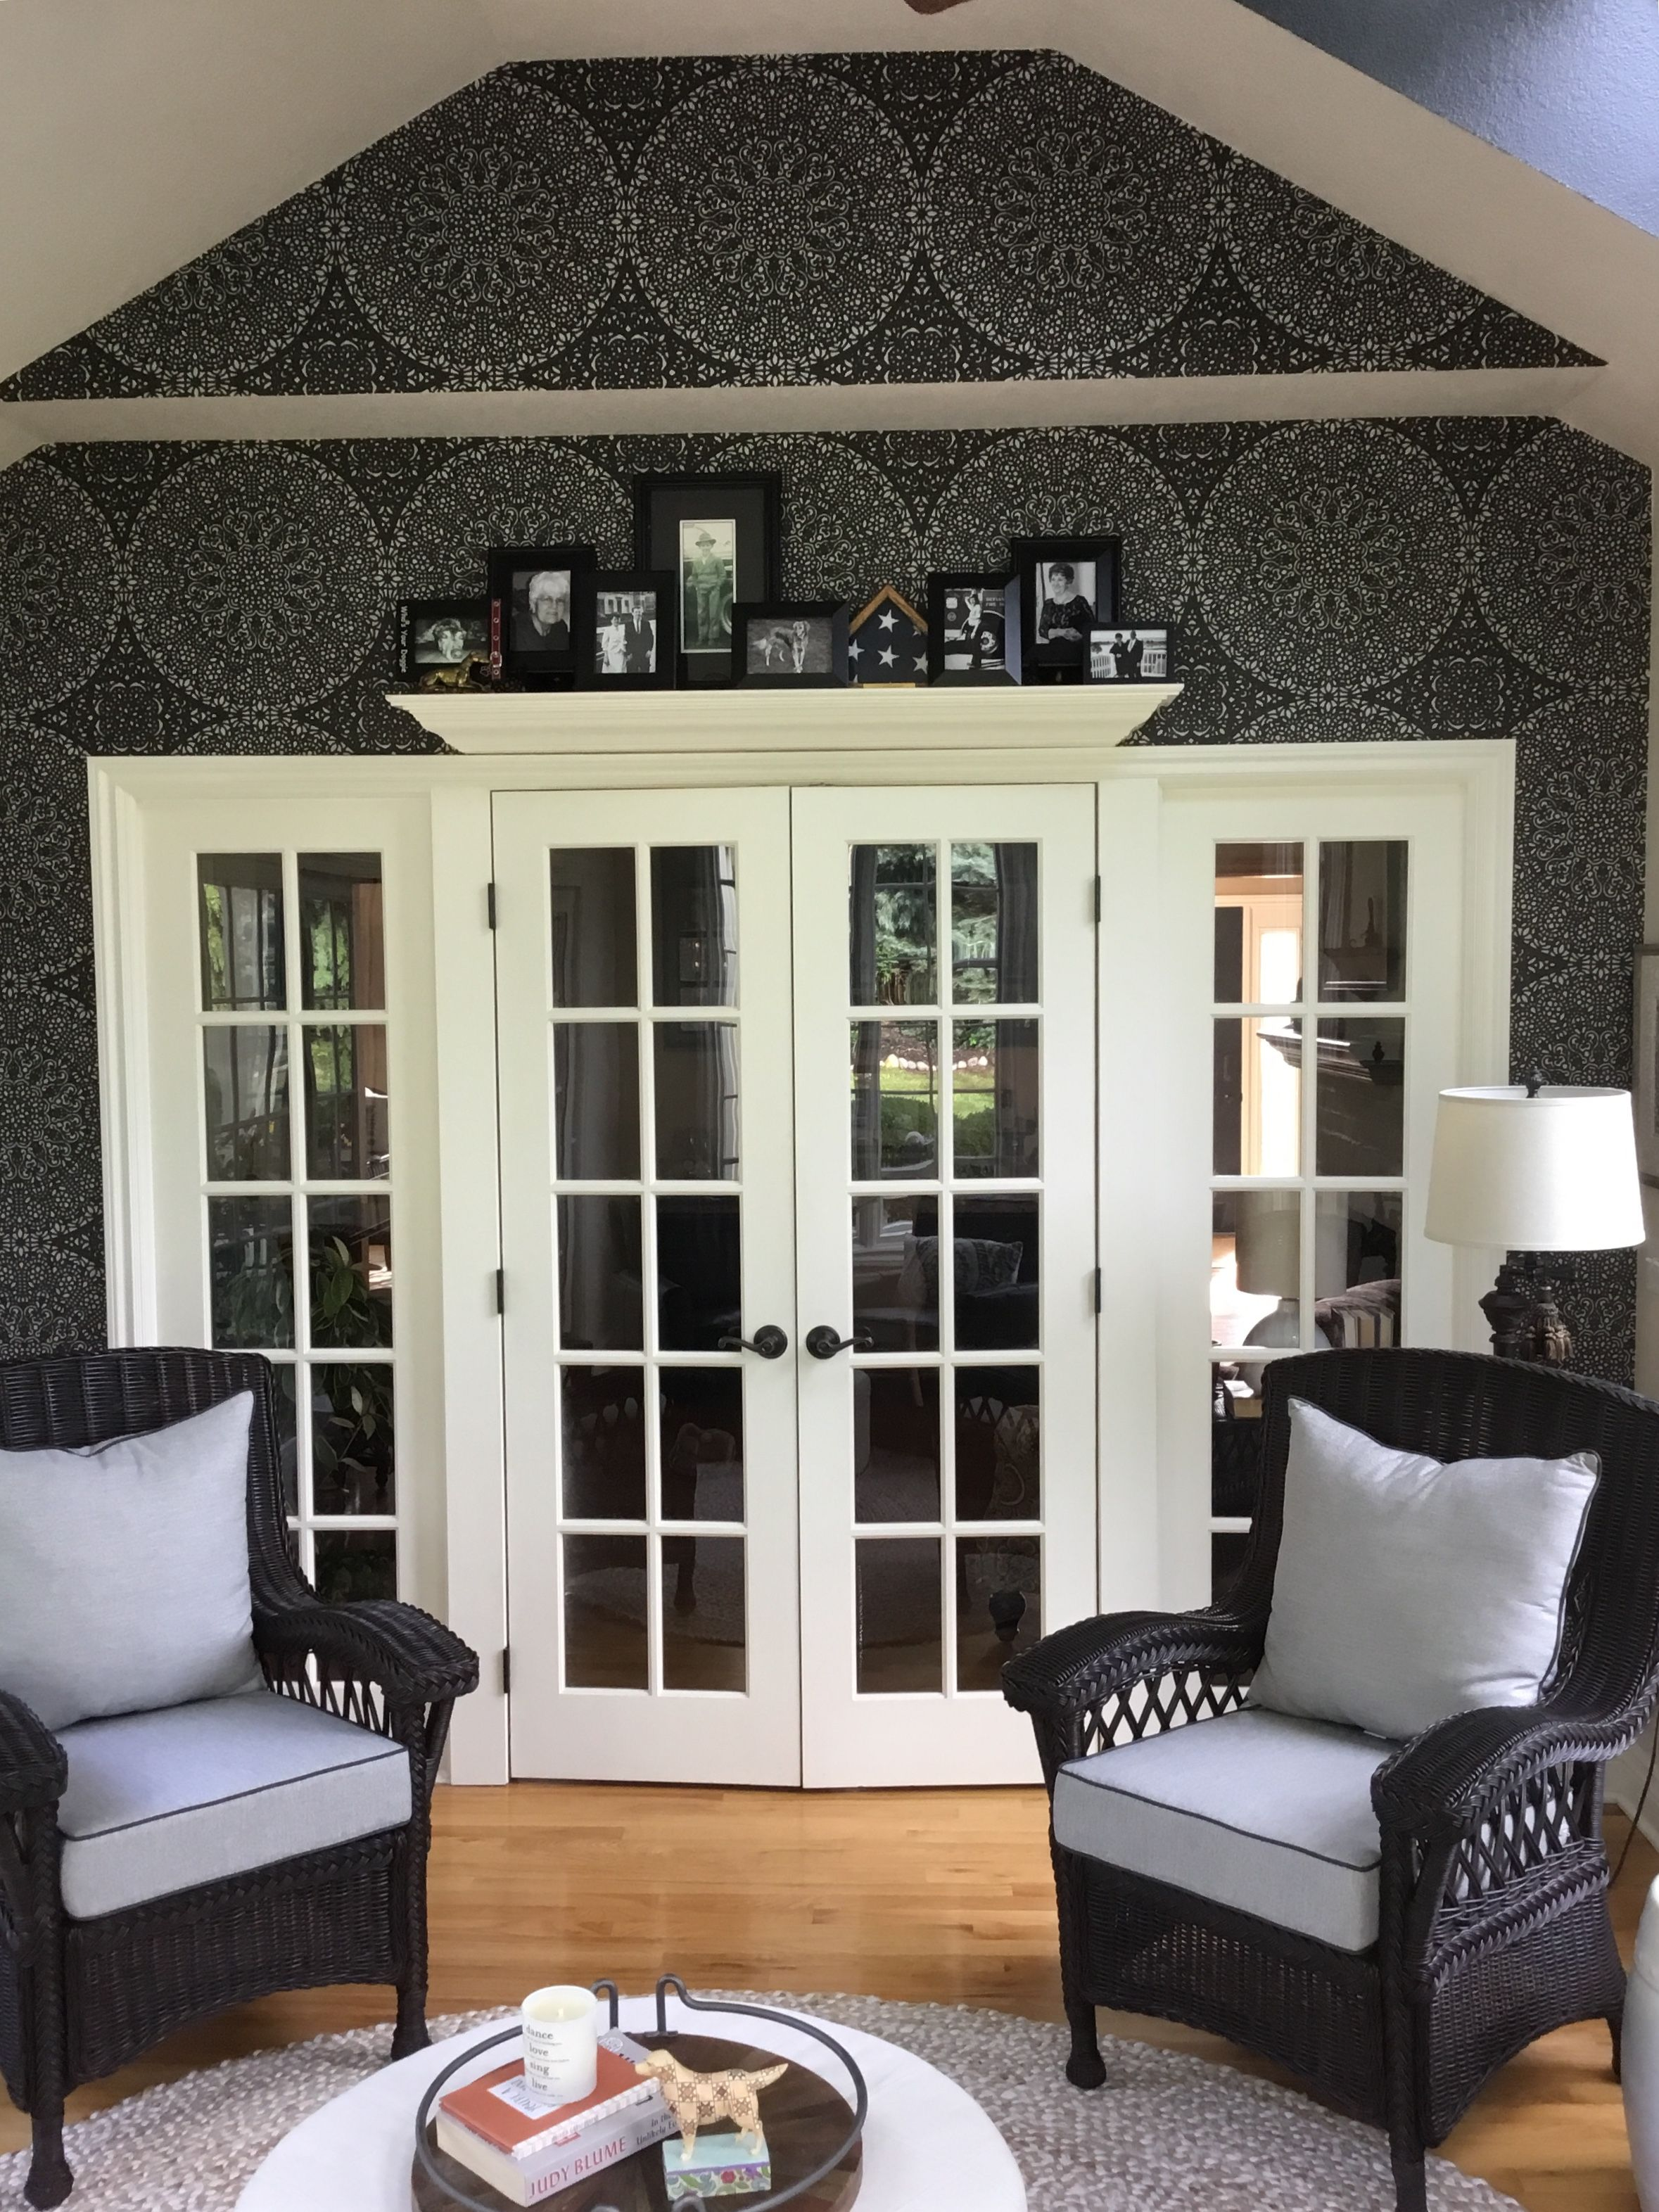 Sunroom with wallpaper accent wall.  Sunroom decorating